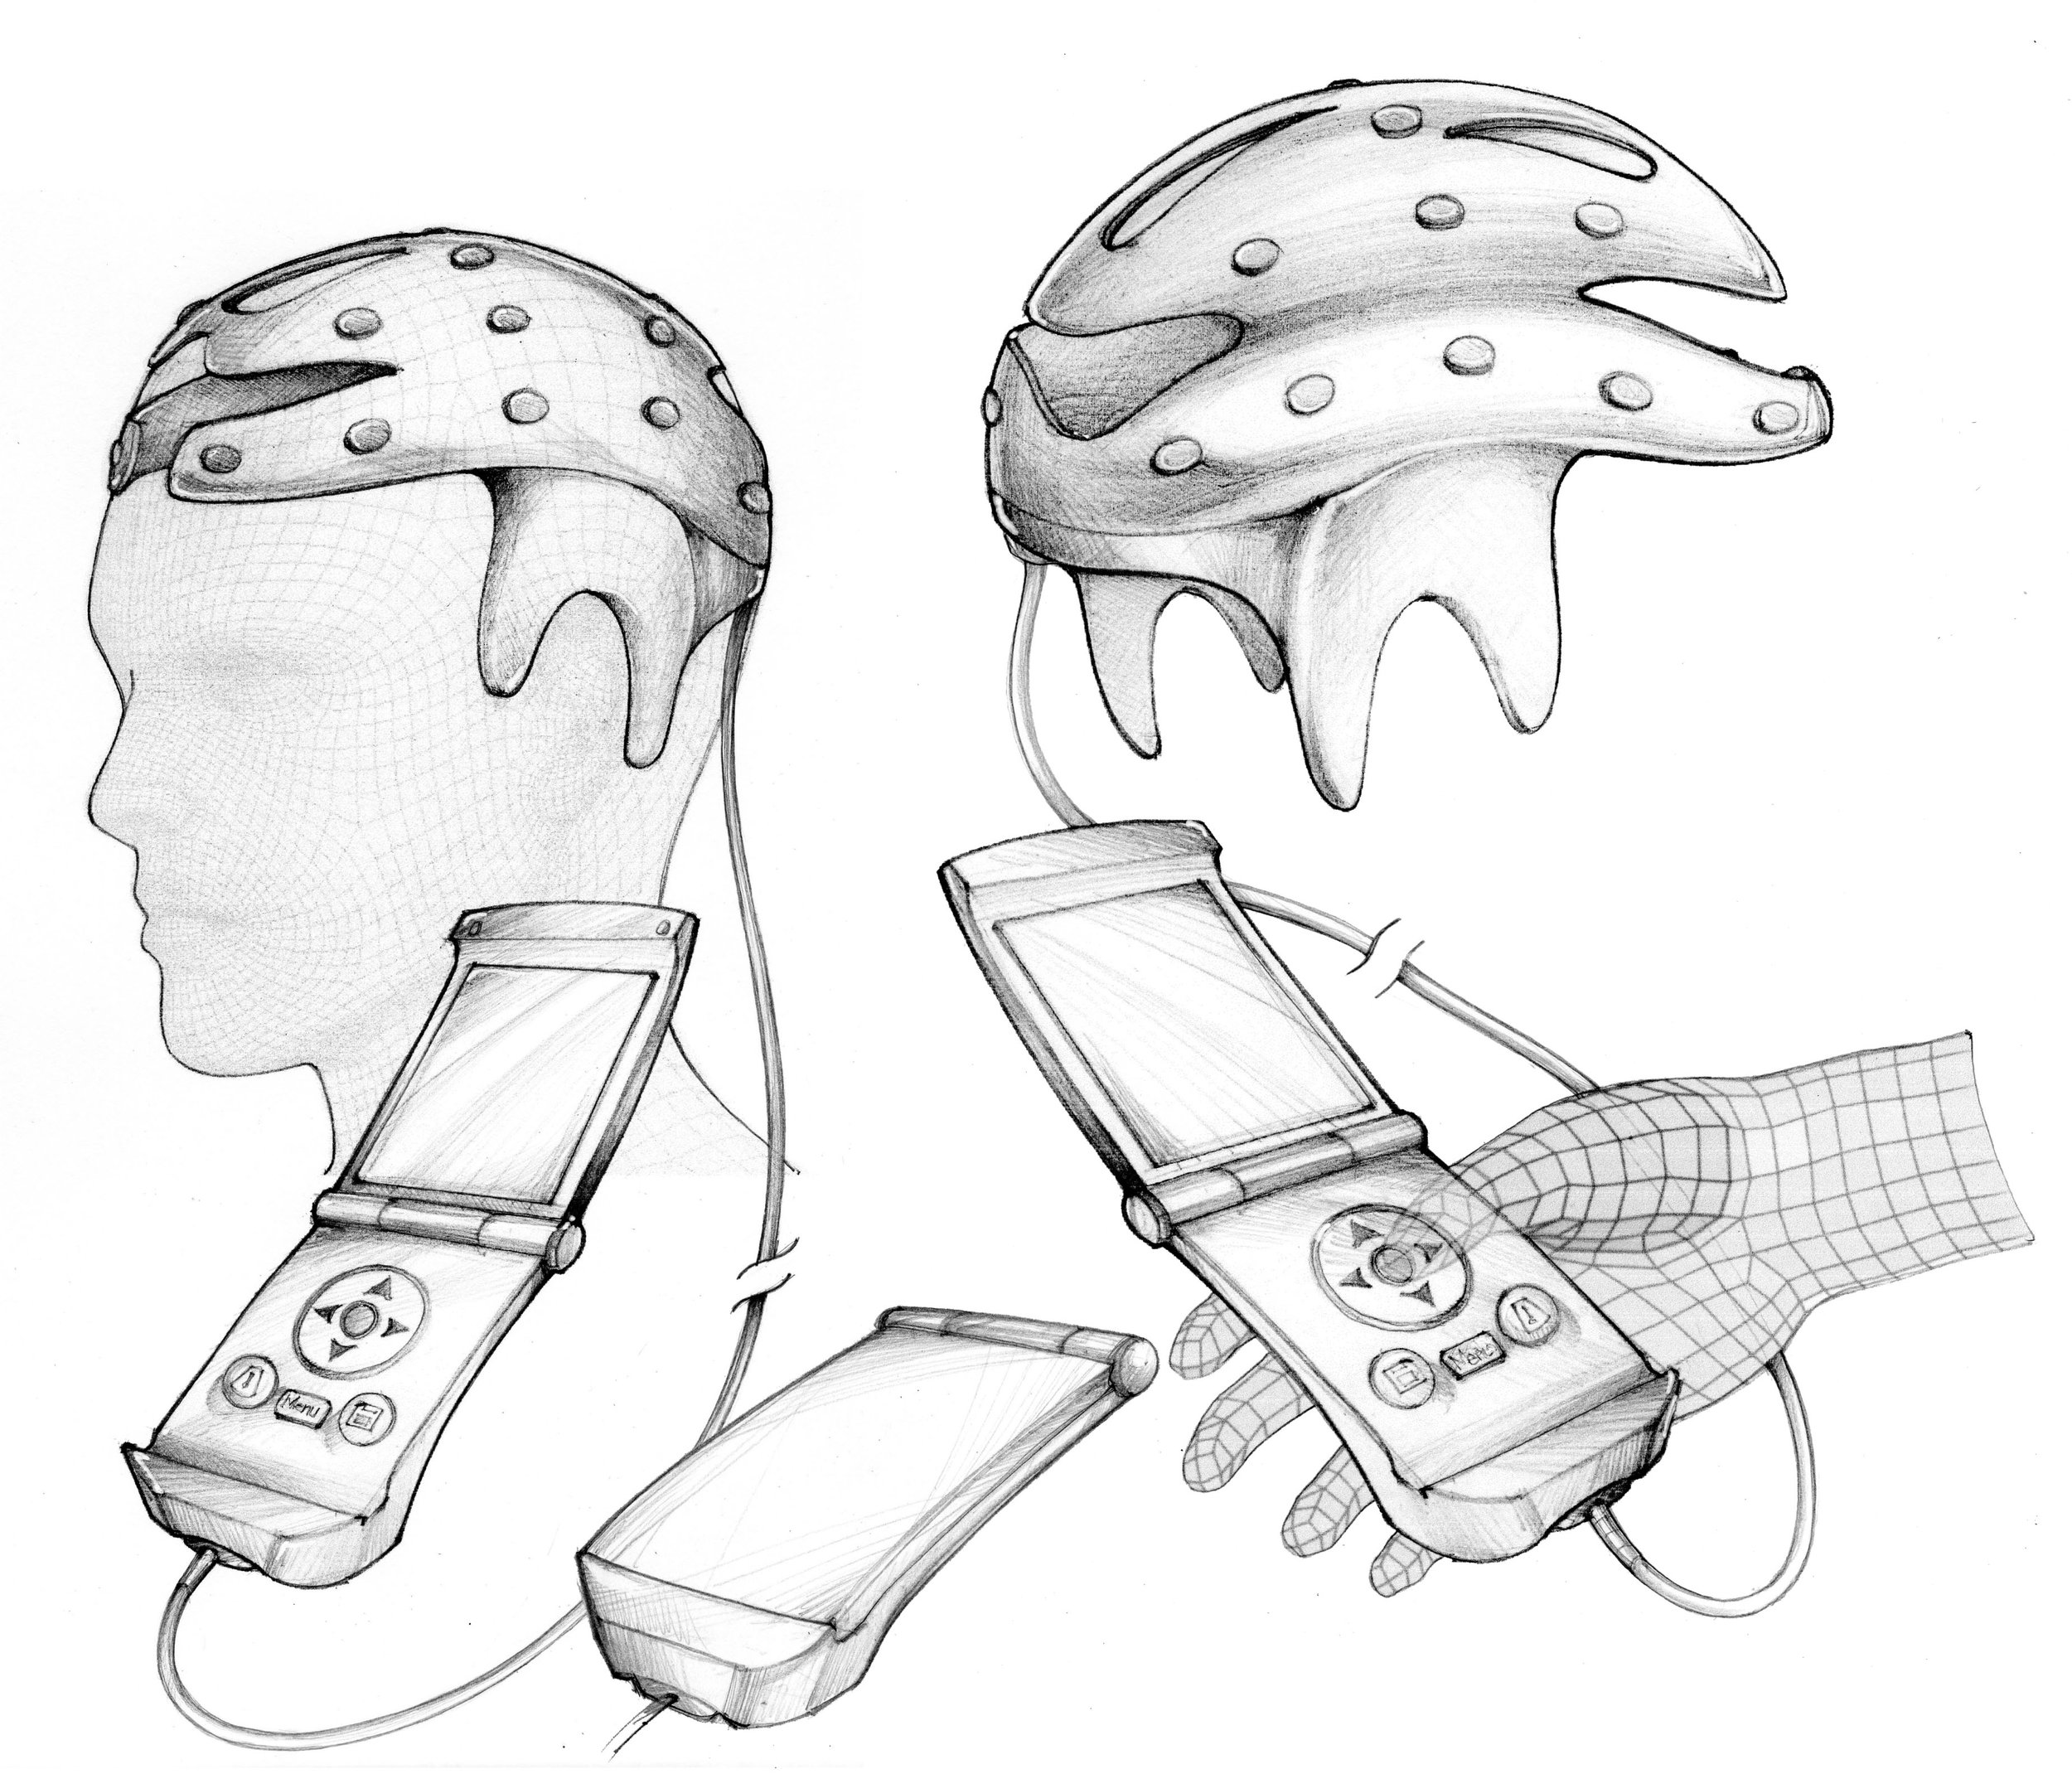 Artistic rendering of a handheld device that automates treatments